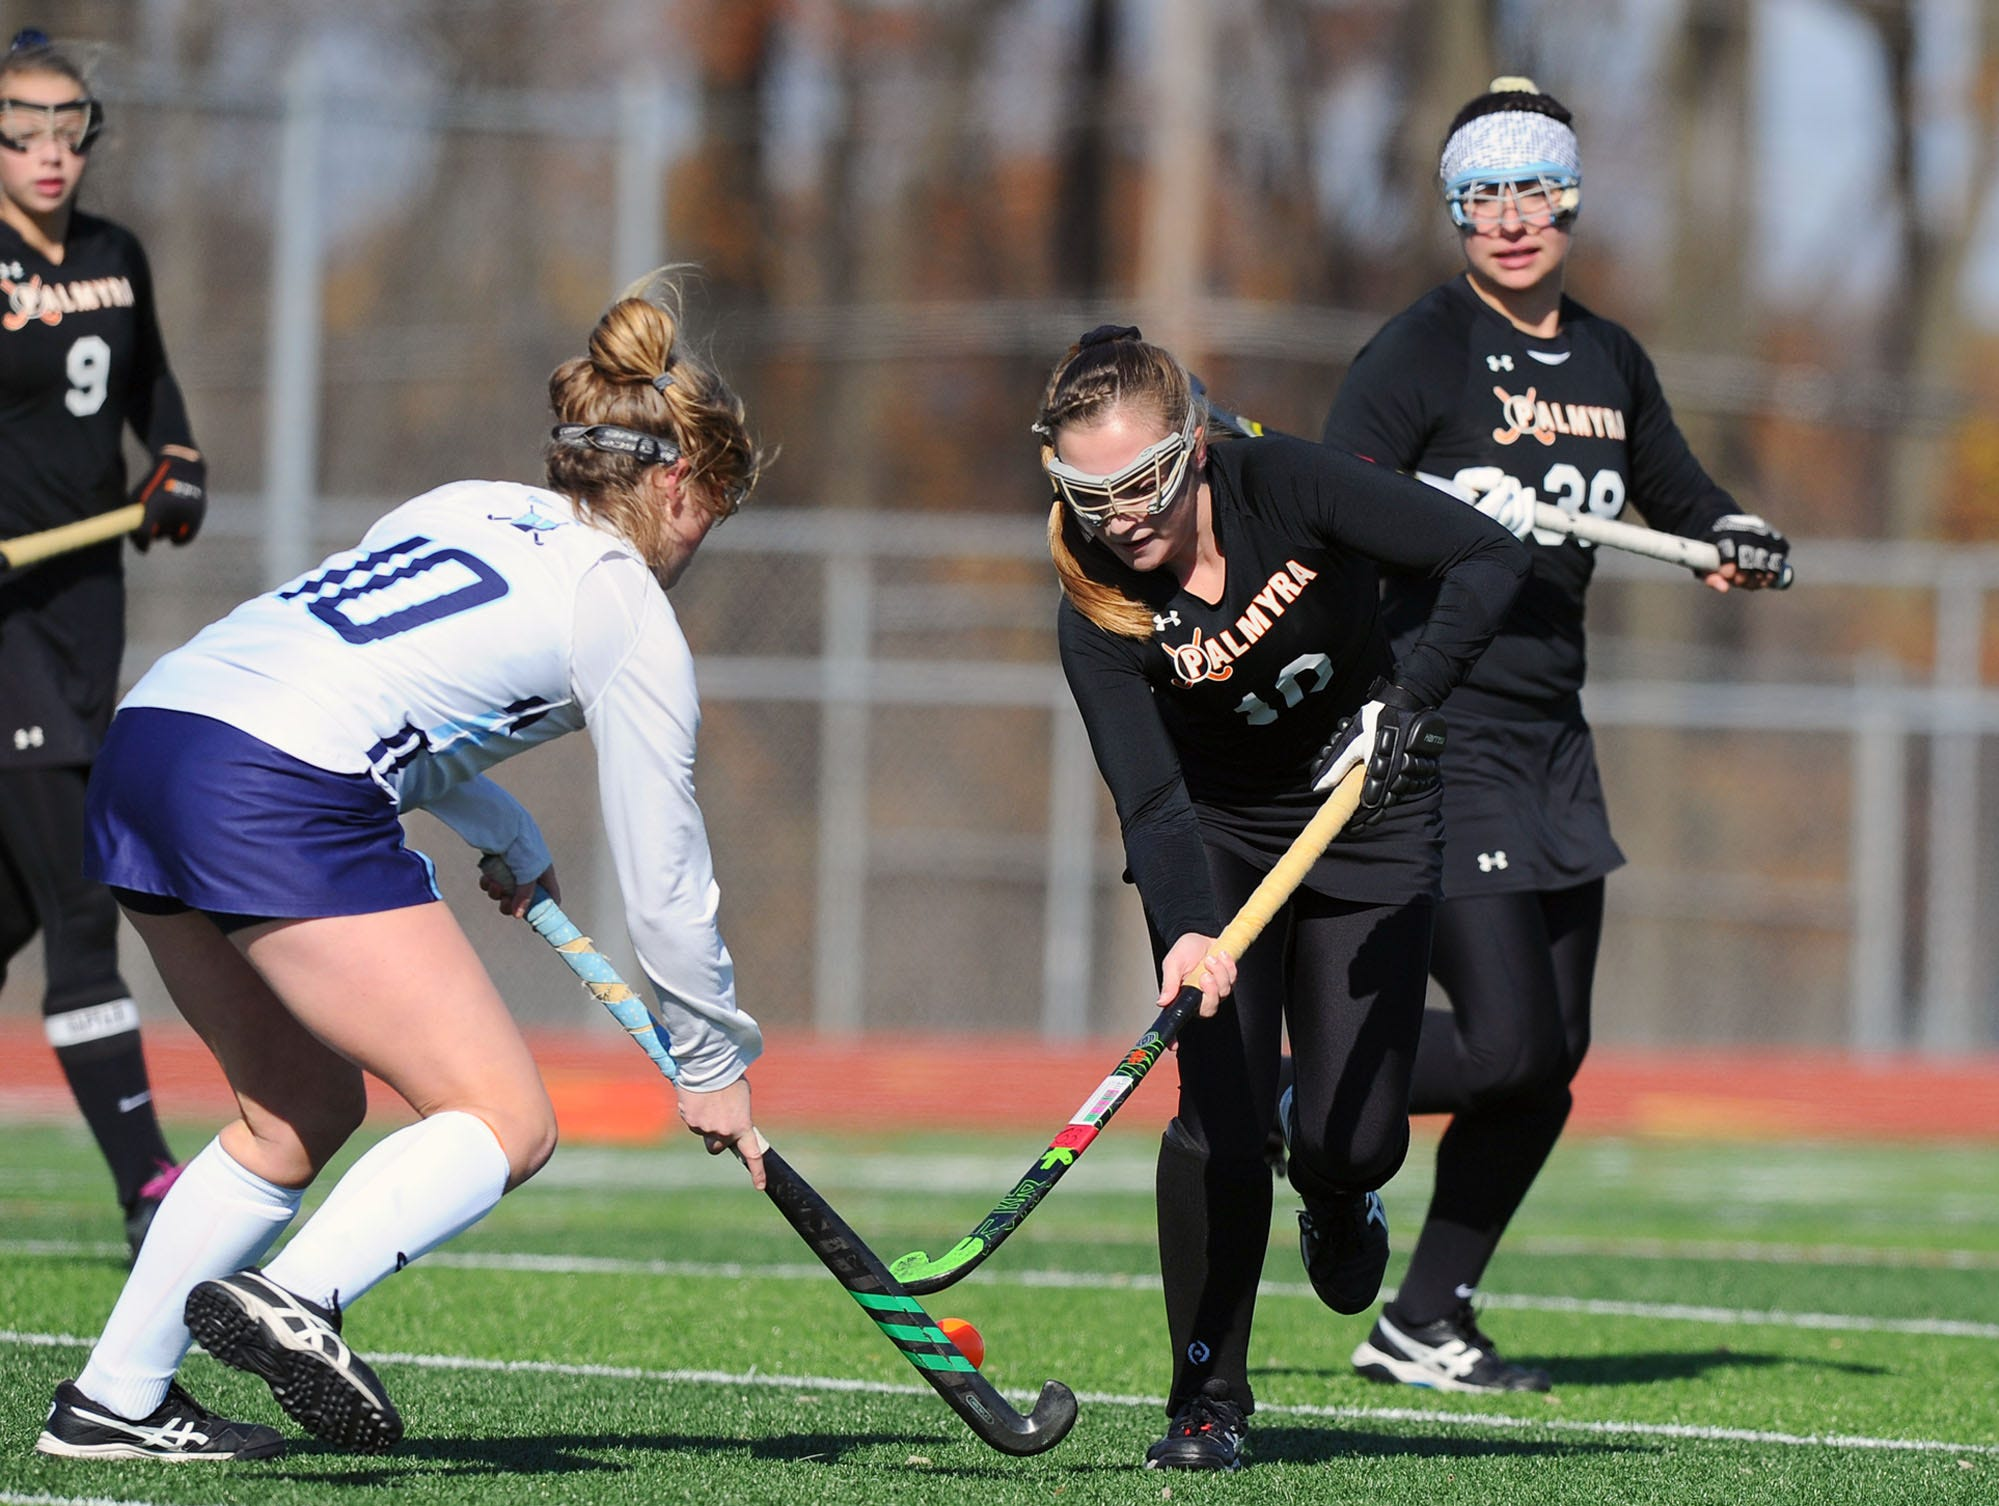 Palmyra's Alexa Derr (10) controls the ball in front of Mary Harkins (10) of Villa Maria during the first half of play.